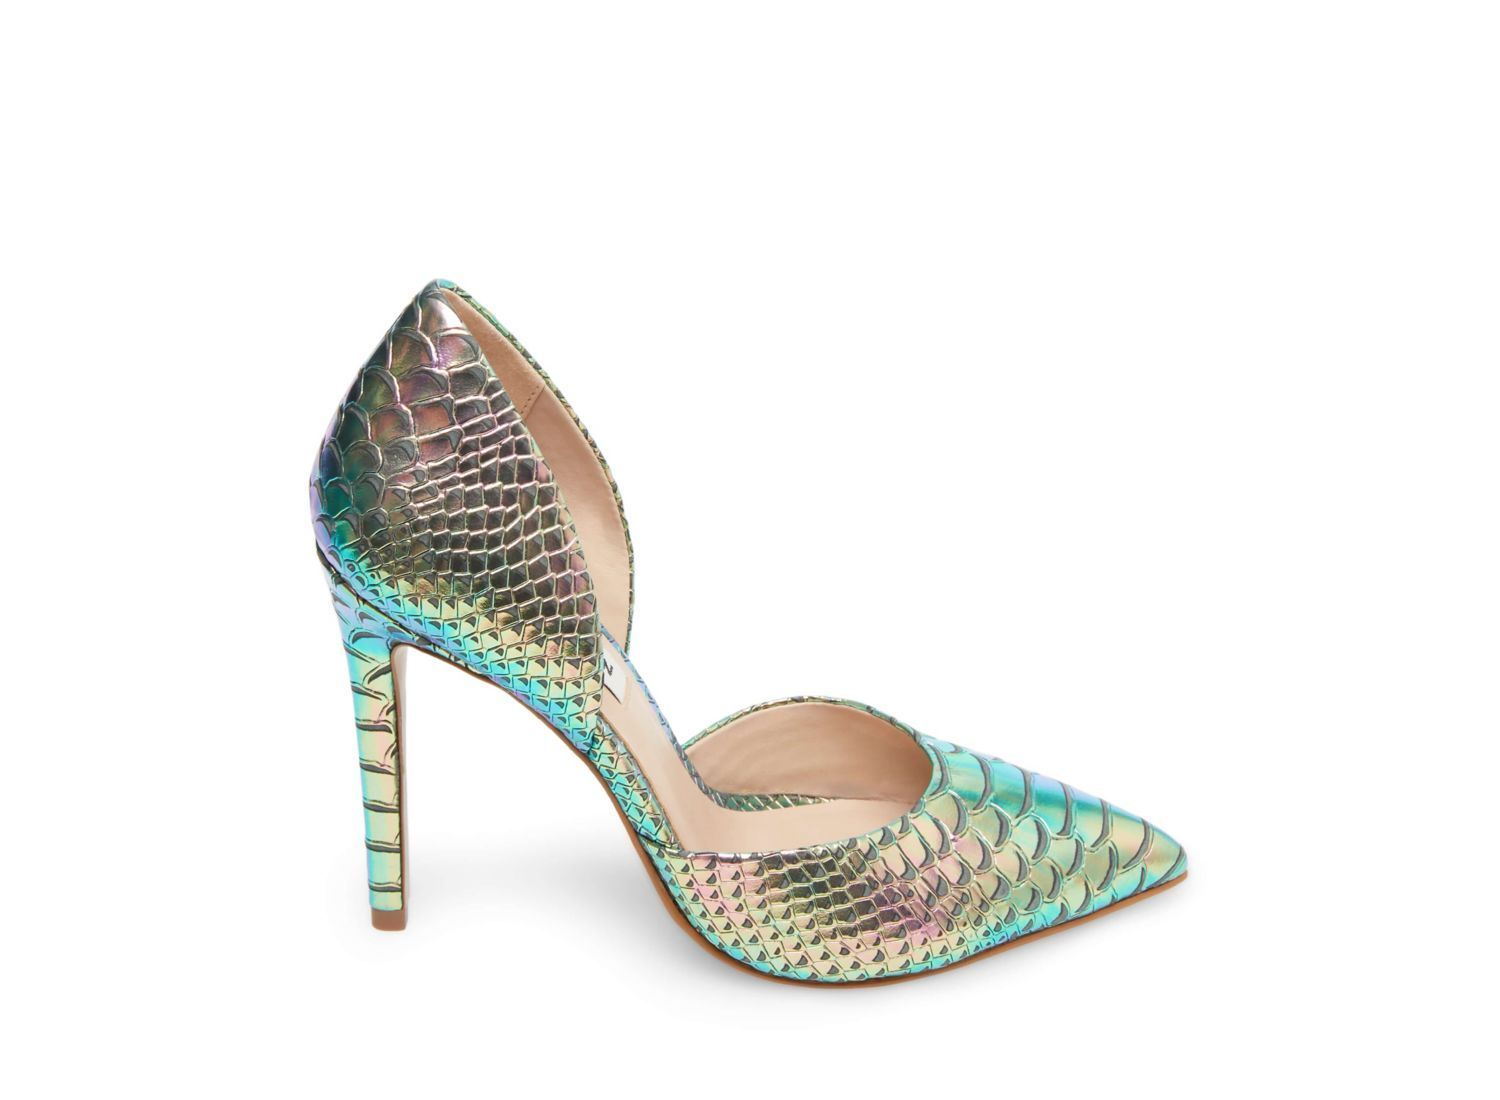 455381a2b4 10 Best Prom Shoes 2019 - Trendy Shoes